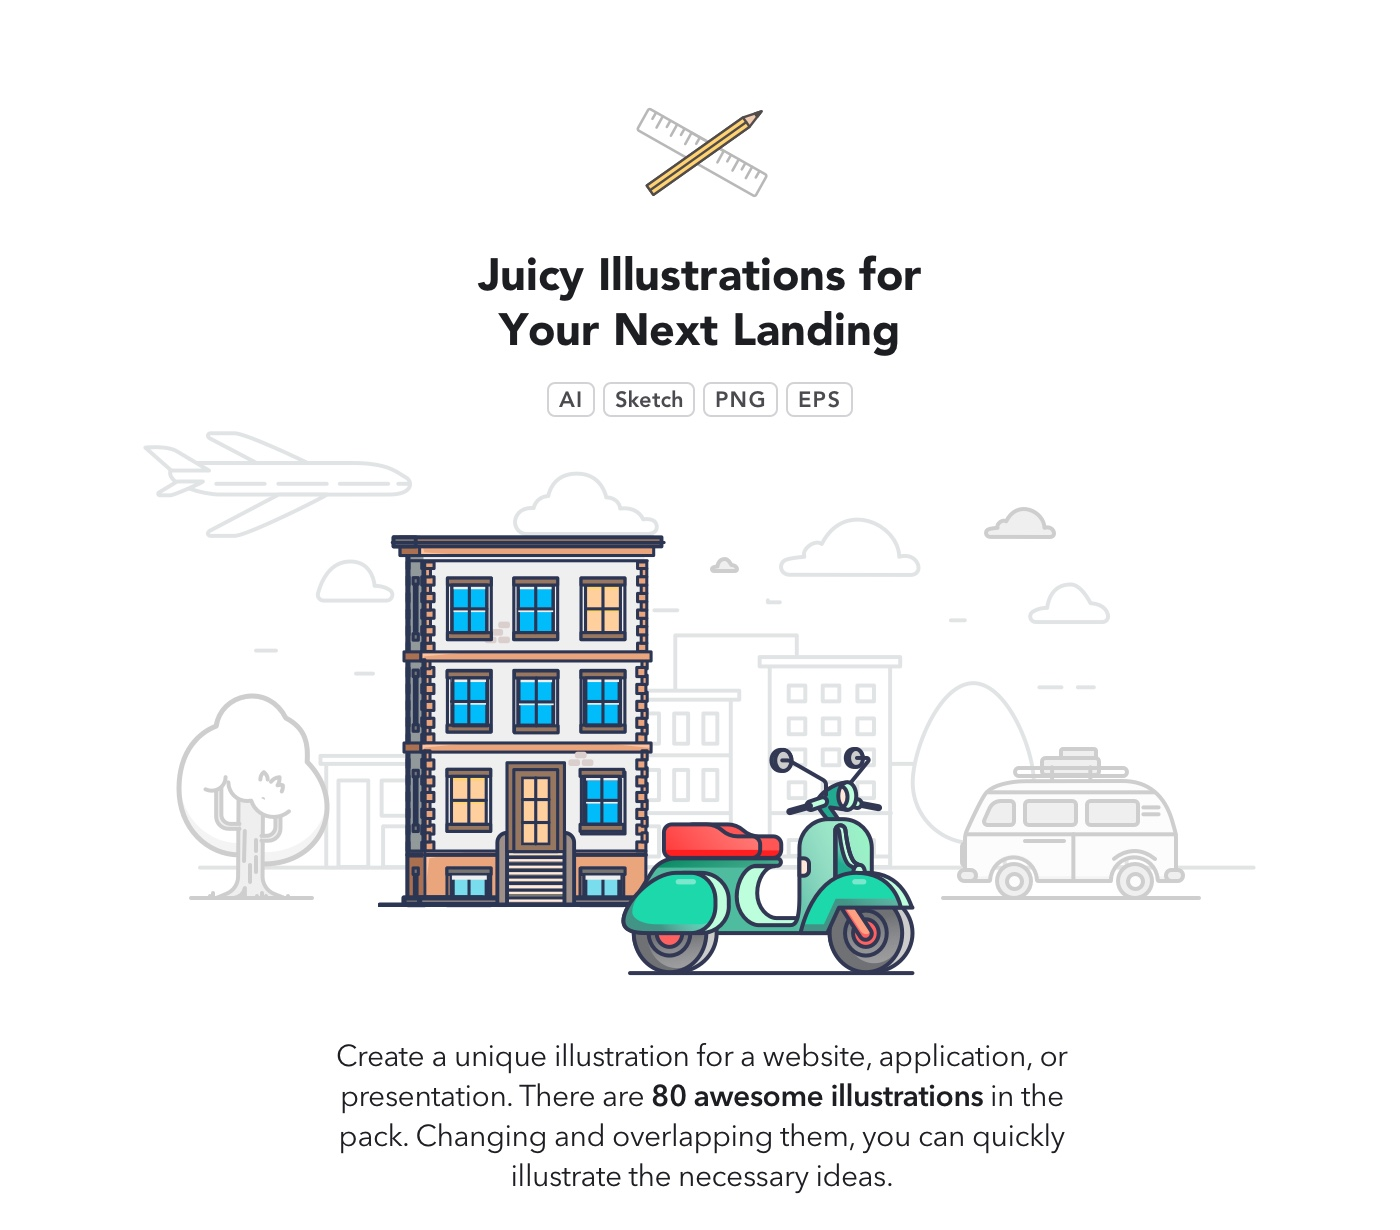 Juicy Illustrations